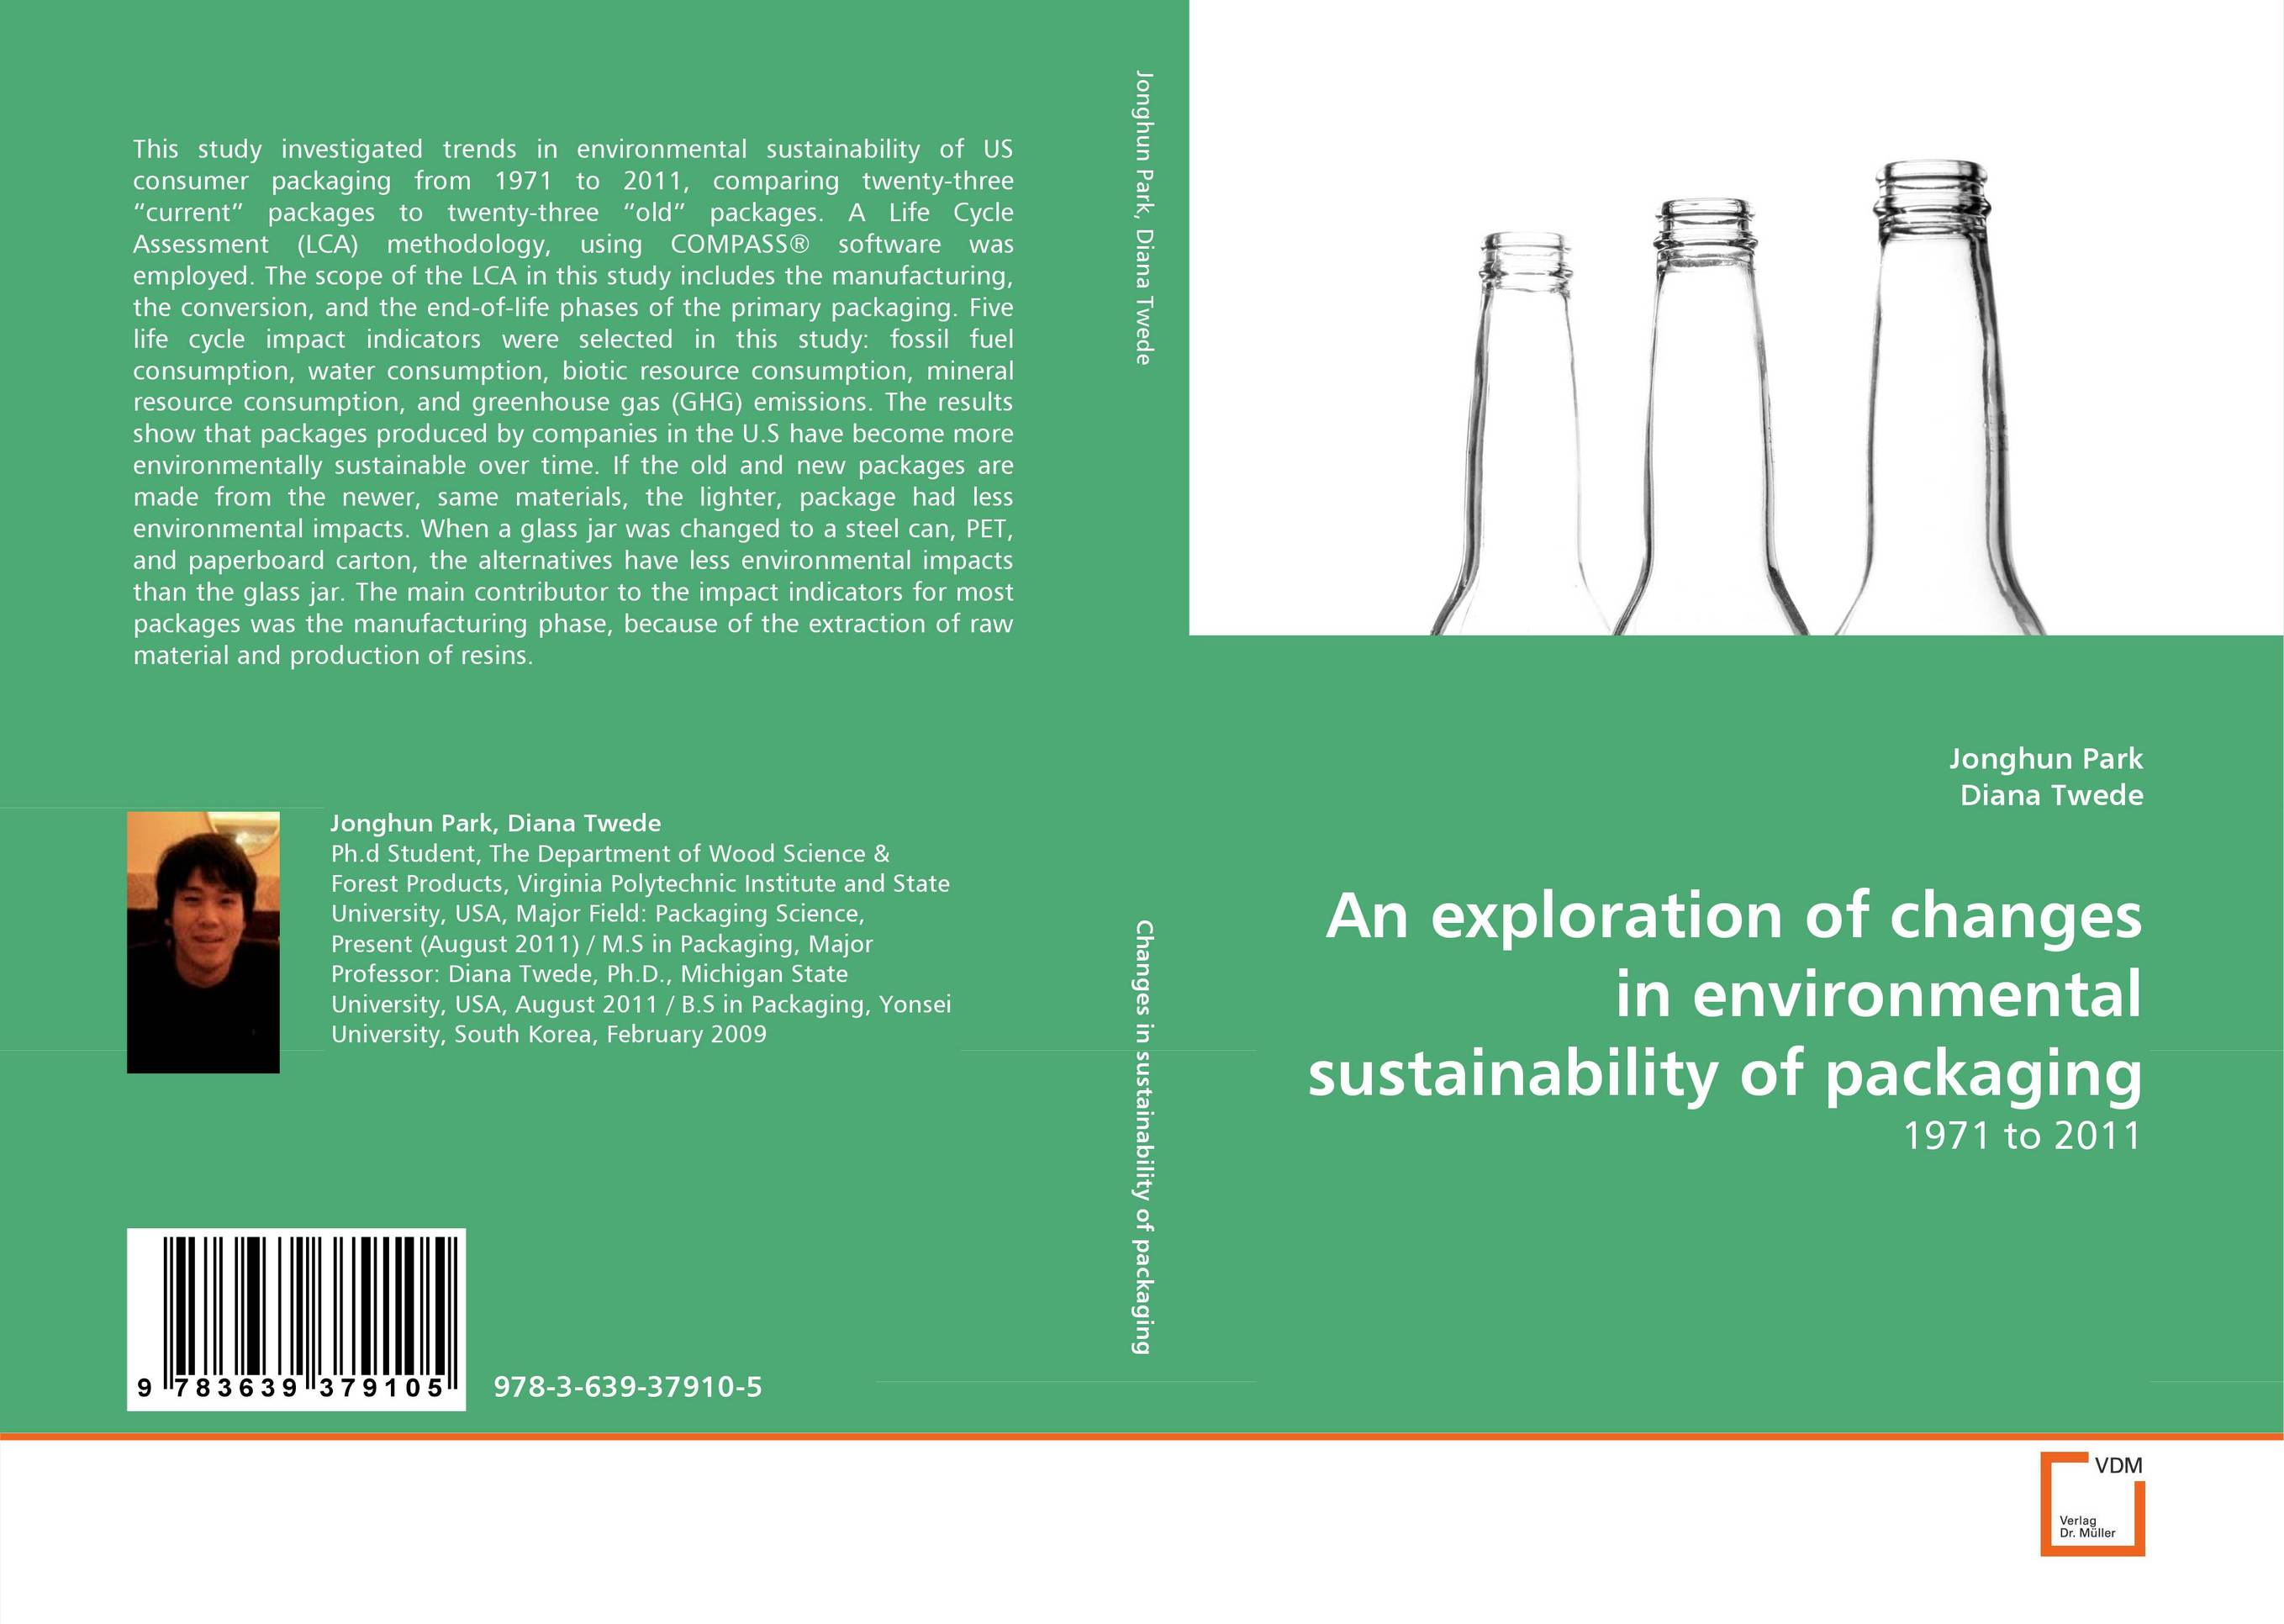 An exploration of changes in environmental sustainability of packaging the twenty three